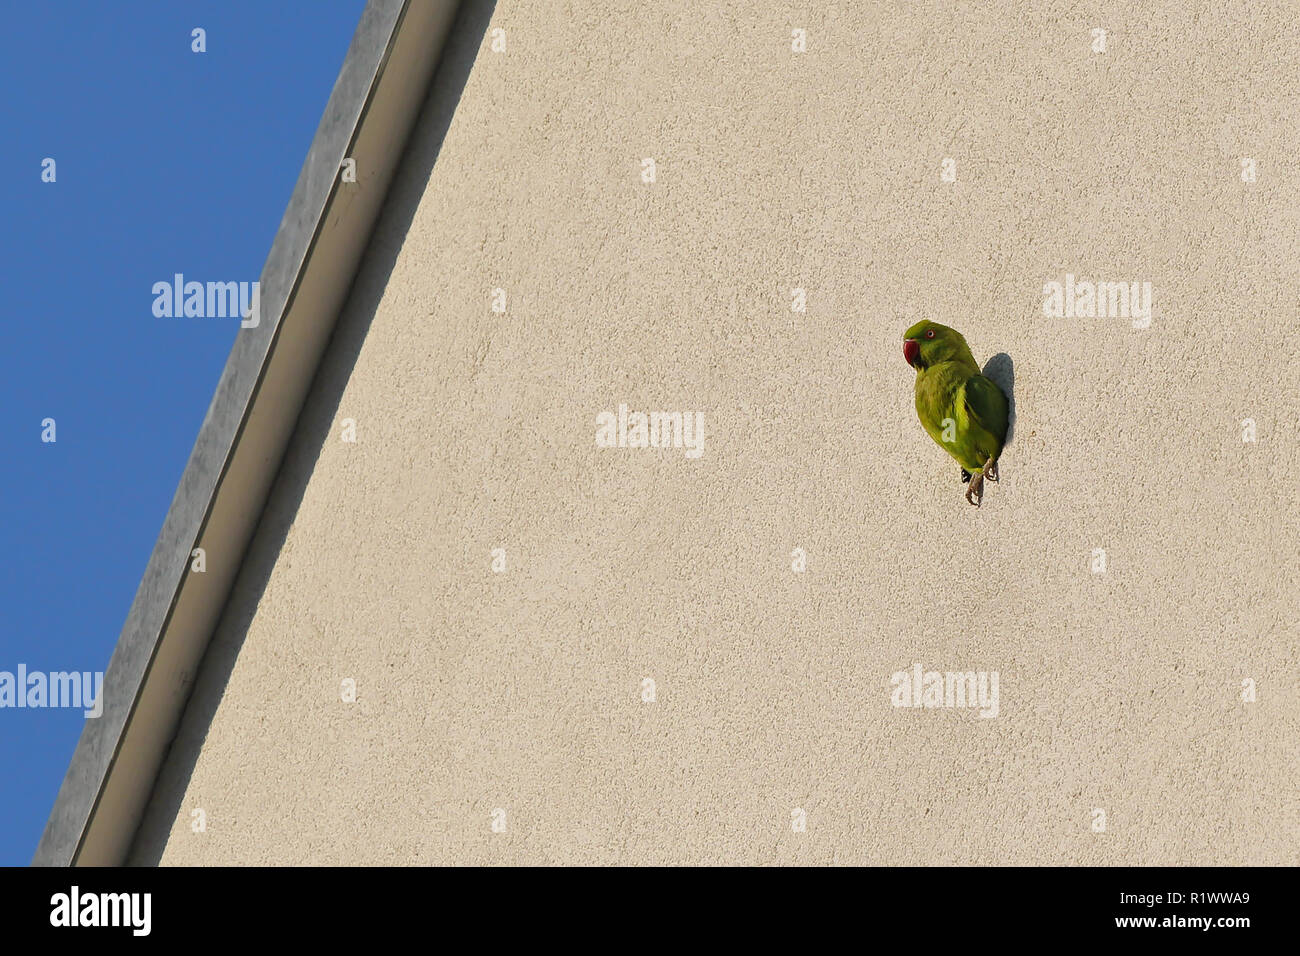 Rose-ringed Parakeet (Psittacula krameri) looking out of nest hole in house front, Heidelberg, Baden-Wuerttemberg, Germany - Stock Image